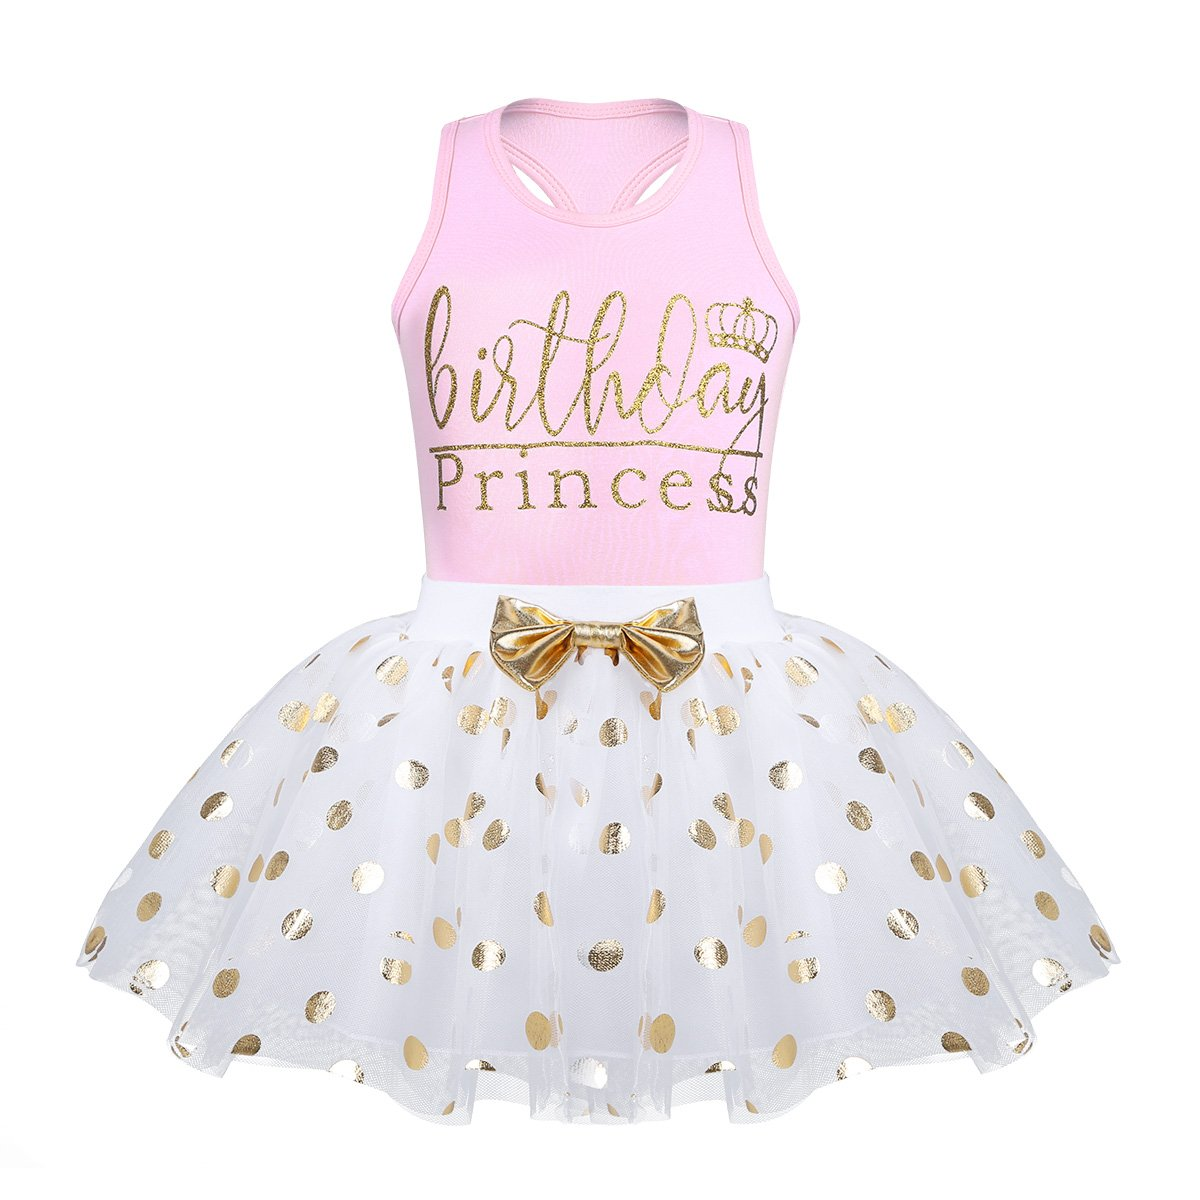 CHICTRY Toddler Little Girls Fancy Sequin Polka Dots Birthday Outfit Racer-Back Shirt with Mesh Tutu Skirt Set Pink 3-4